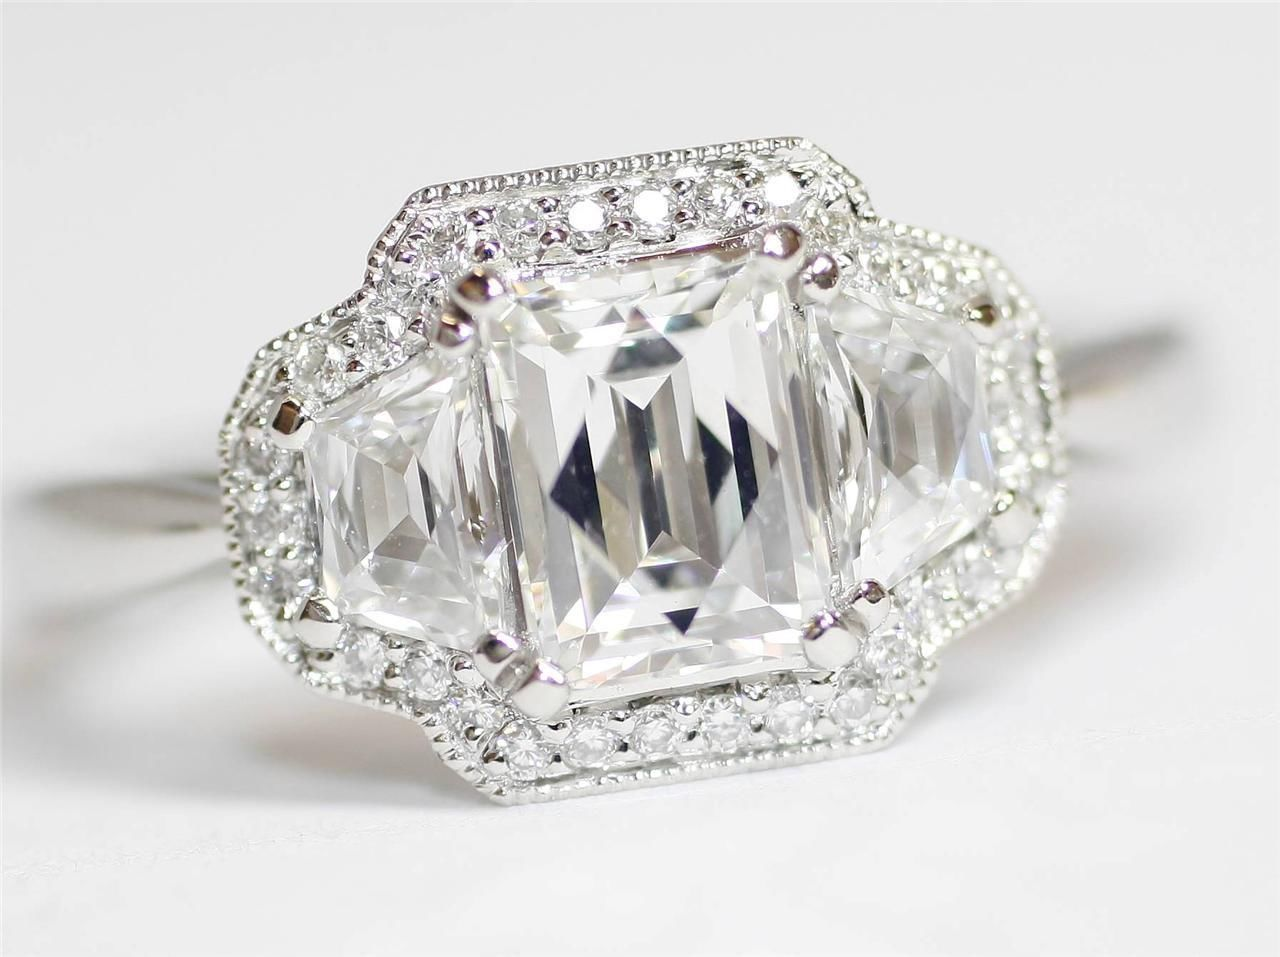 Sell Your Diamond Jewelry in Santa Fe NM